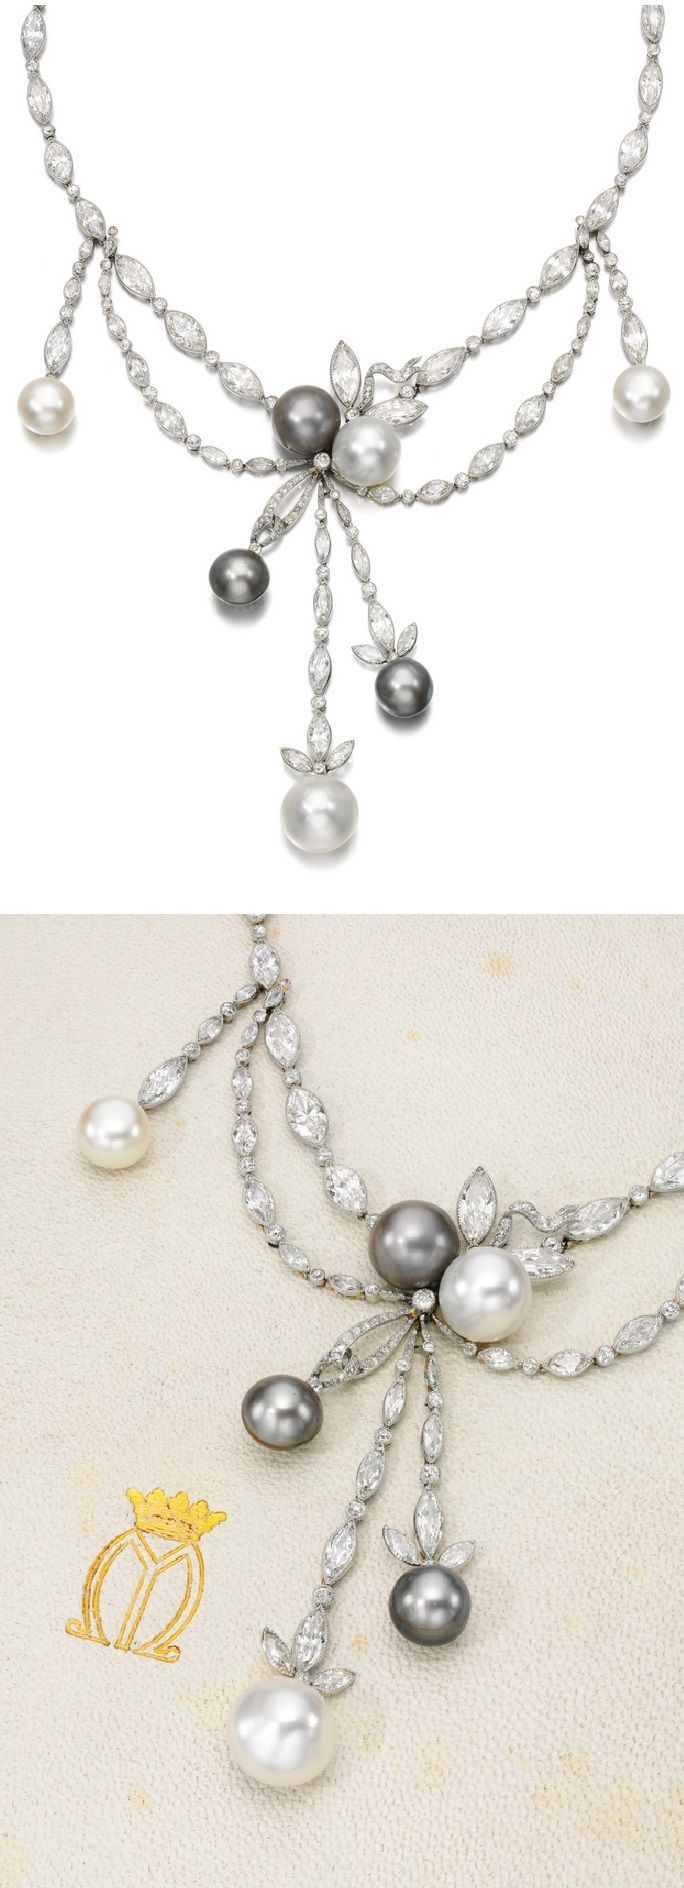 Formerly the property of MARY, DUCHESS OF ROXBURGHE - An Art Deco natural pearl and diamond necklace, circa 1920. Composed of millegrain-set marquise-shaped and circular-cut diamonds, the front with garland and ribbon designs supporting seven oval and button shaped natural pearls, case stamped Cartier, the exterior of the case with monogram and coronet for Mary, Duchess of Roxburghe. #DuchessRoxburghe #necklace